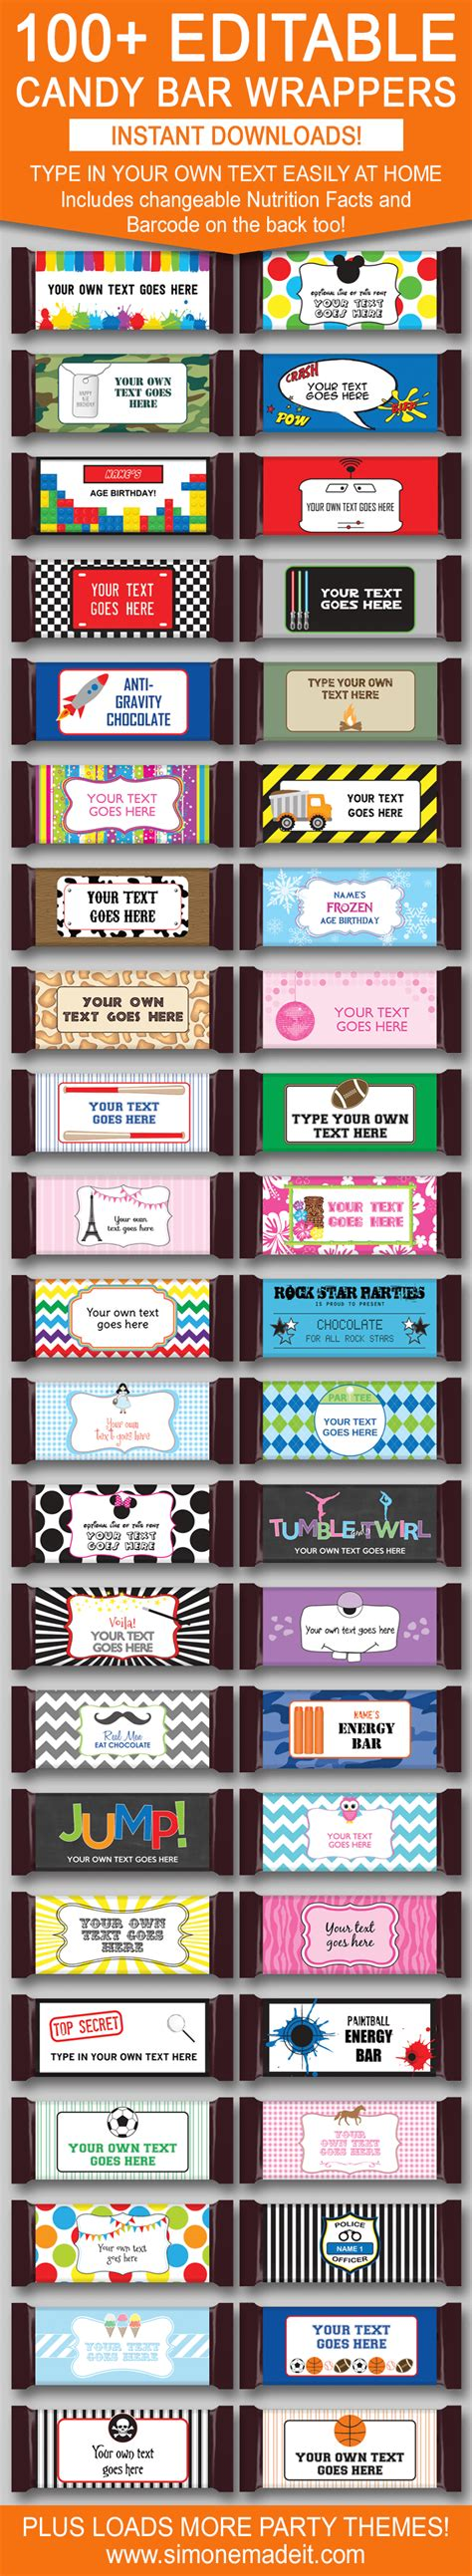 chocolate bar label template diy bar wrapper templates favors chocolate